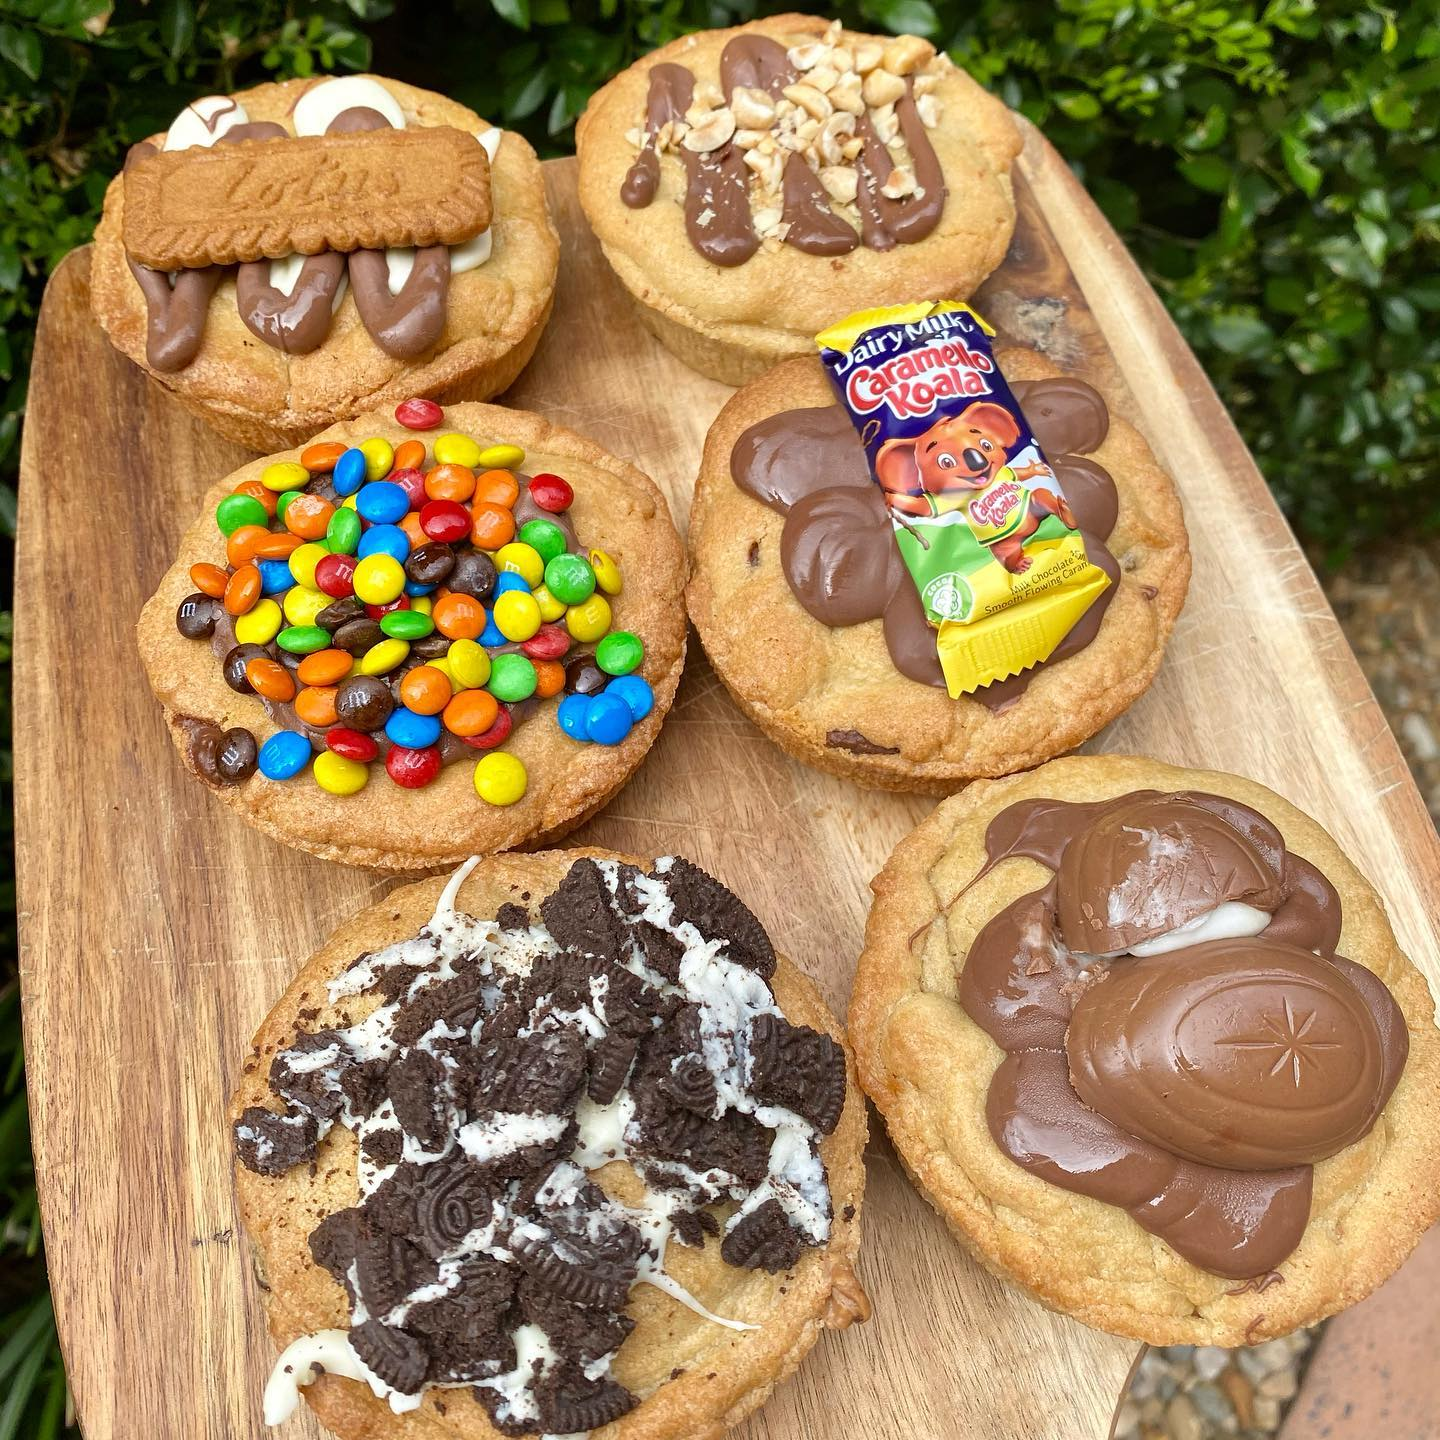 a wooden board piled with cookie pies